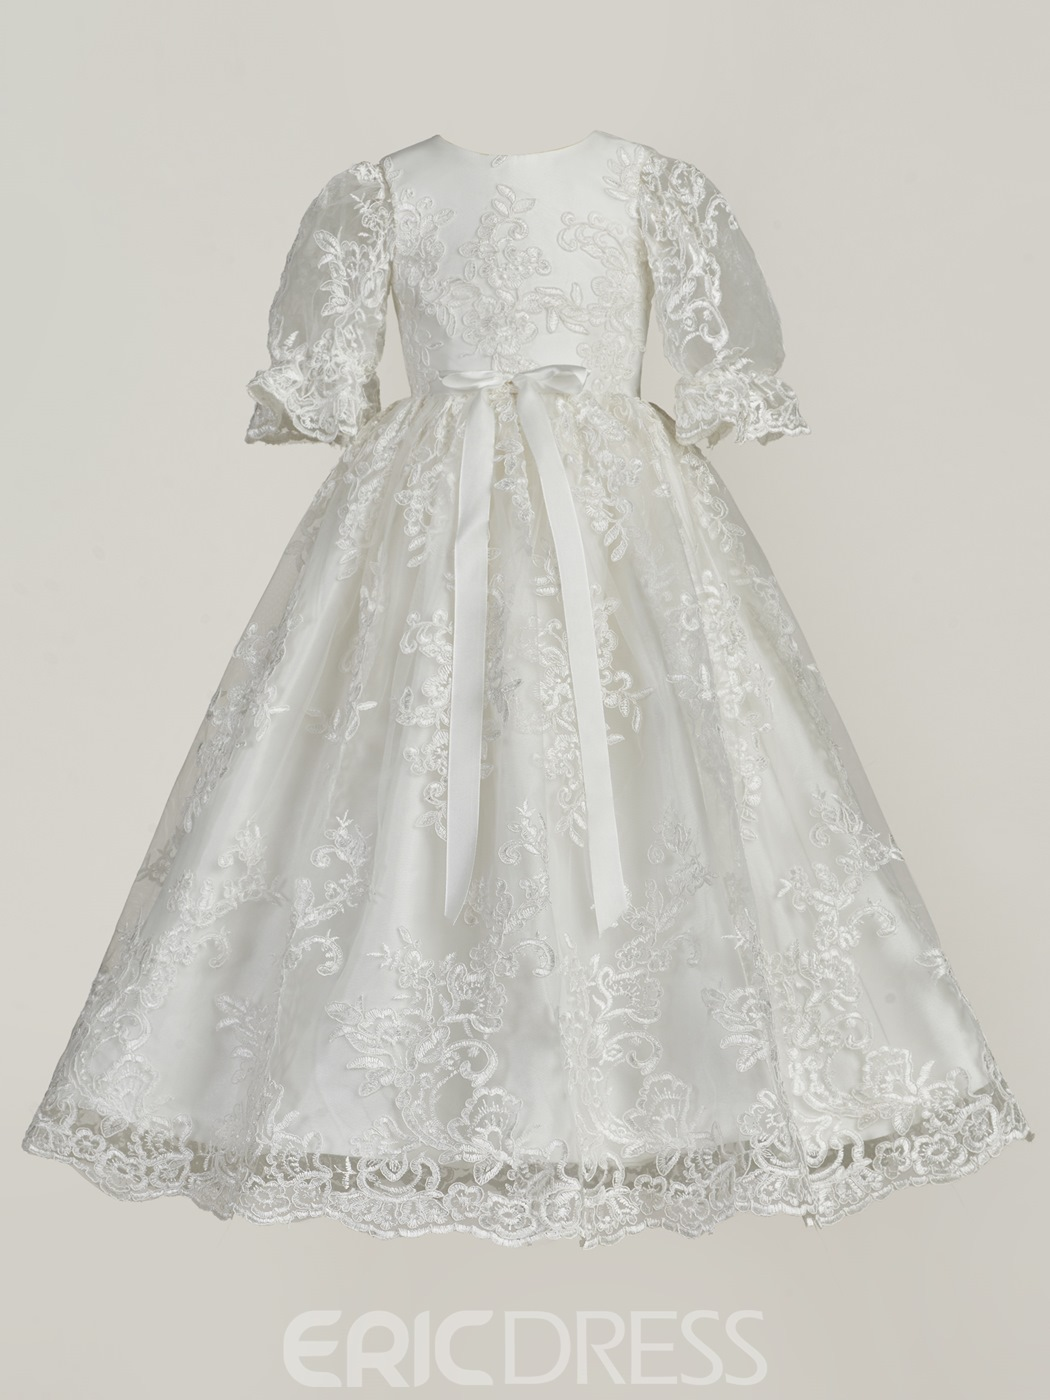 Ericdress Long Beautiful Lace Christening Gown For Girls